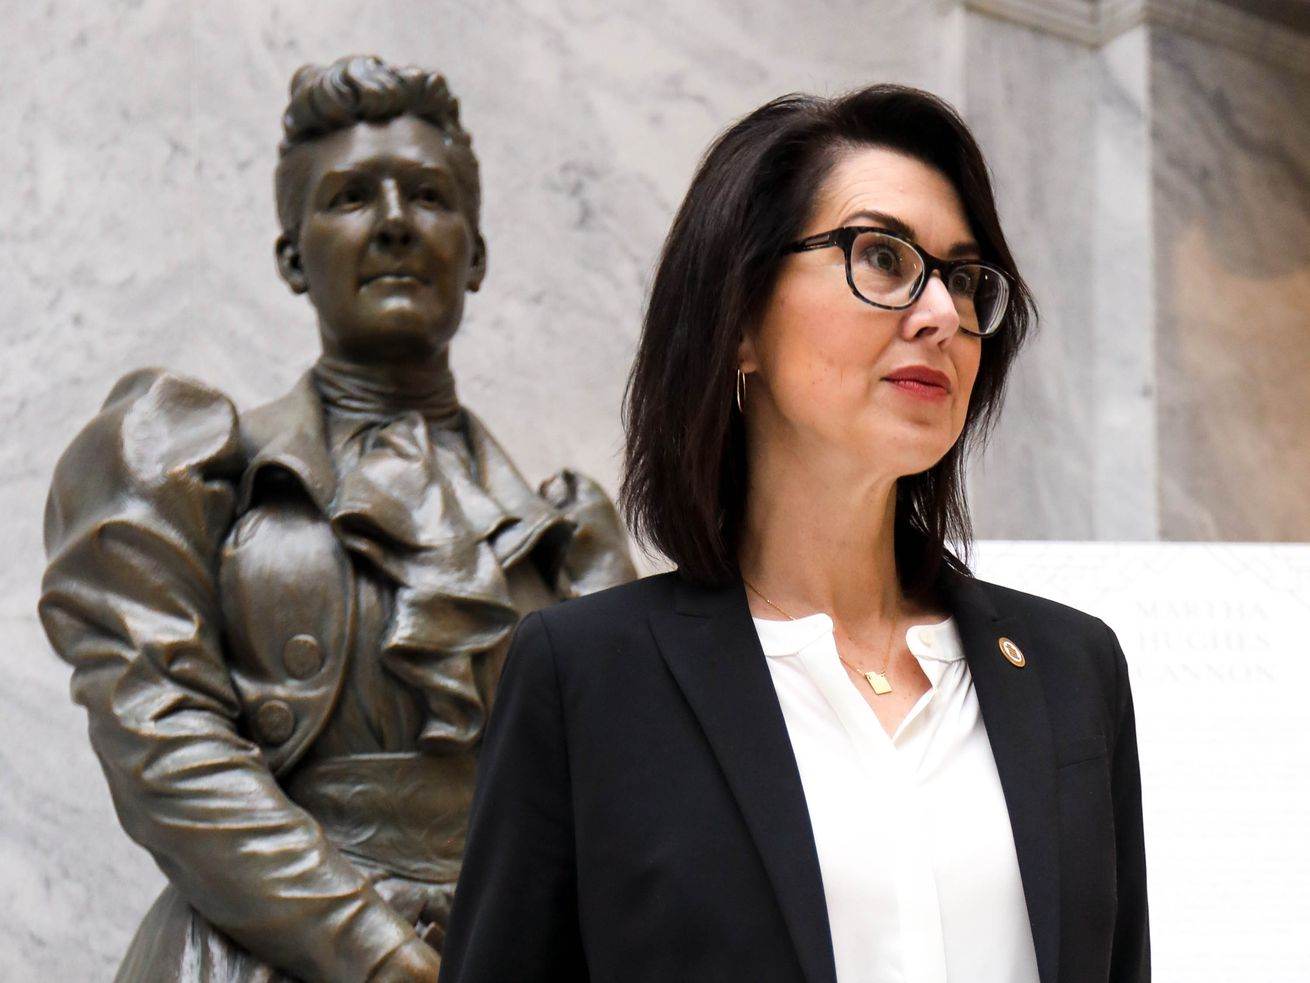 Lt. Gov. Deidre Henderson poses for a photo with a statute of Martha Hughes Cannon at the Capitol in Salt Lake City on Thursday, March 25, 2021.